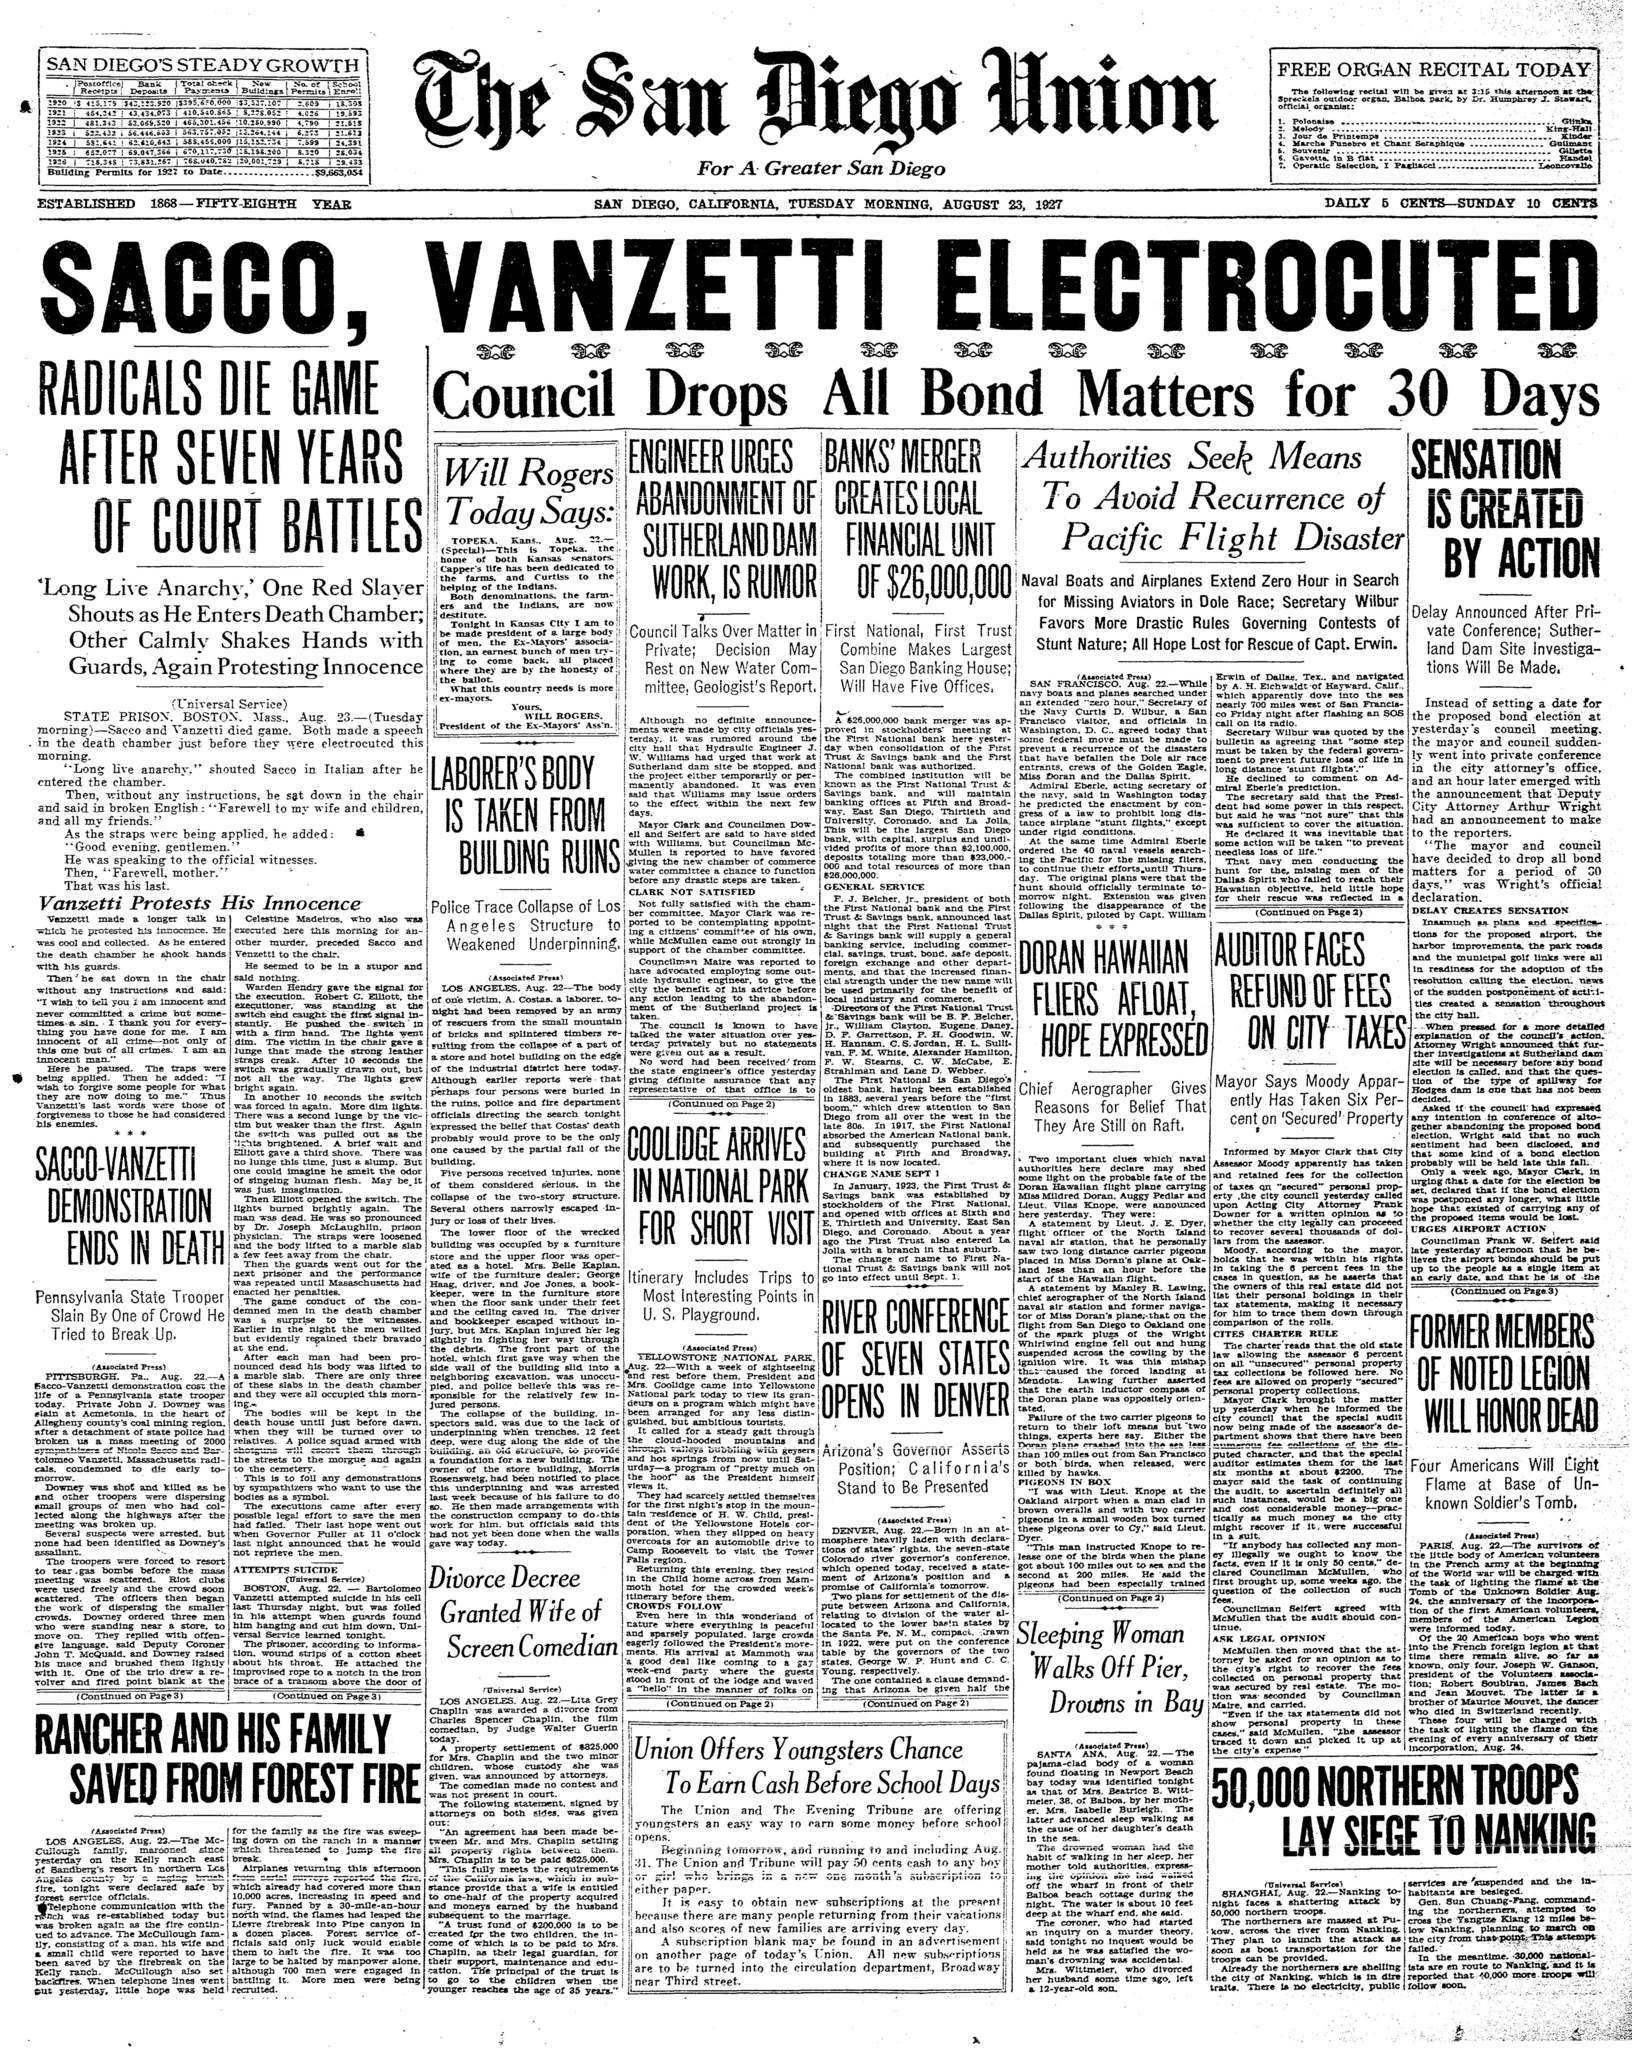 August 23, 1927